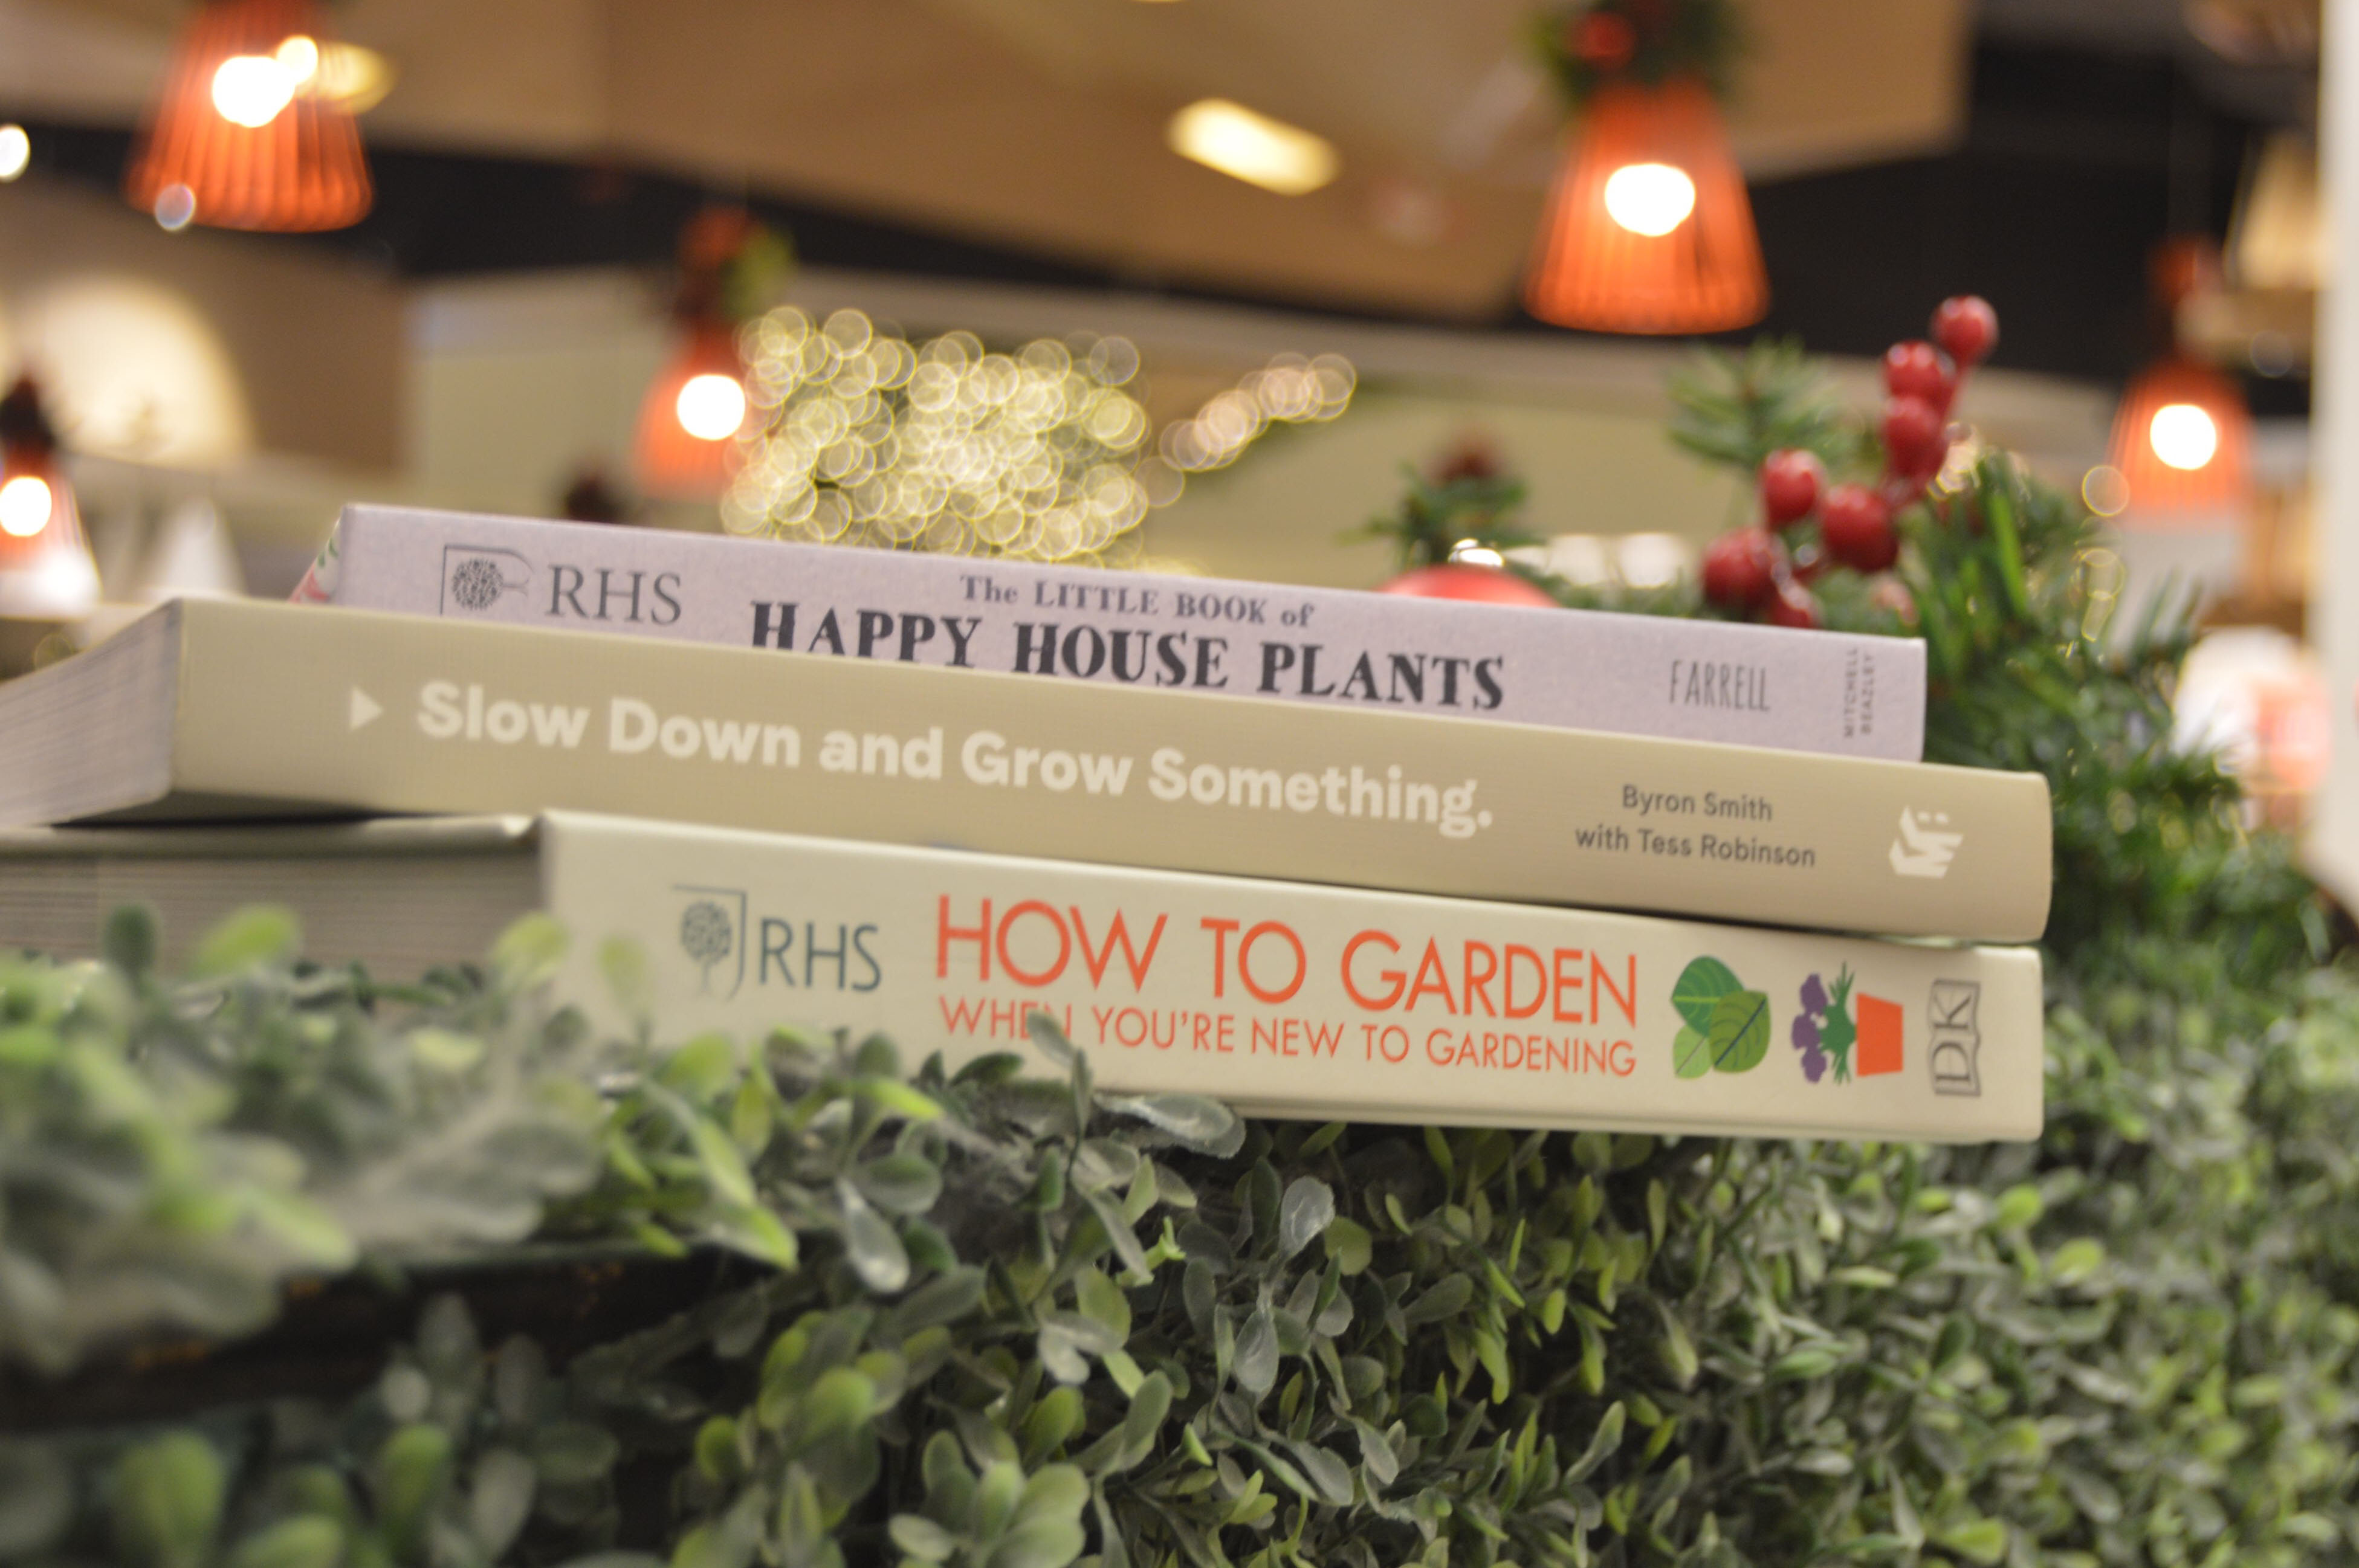 The Rockwellist recommends 'The Little Book of Happy House Plants' by Holly Farrell, 'Slow Down and Grow Something' by Byron Smith with Tess Robinson and 'How to Garden When You're New to Gardening' by The Royal Horticultural Society